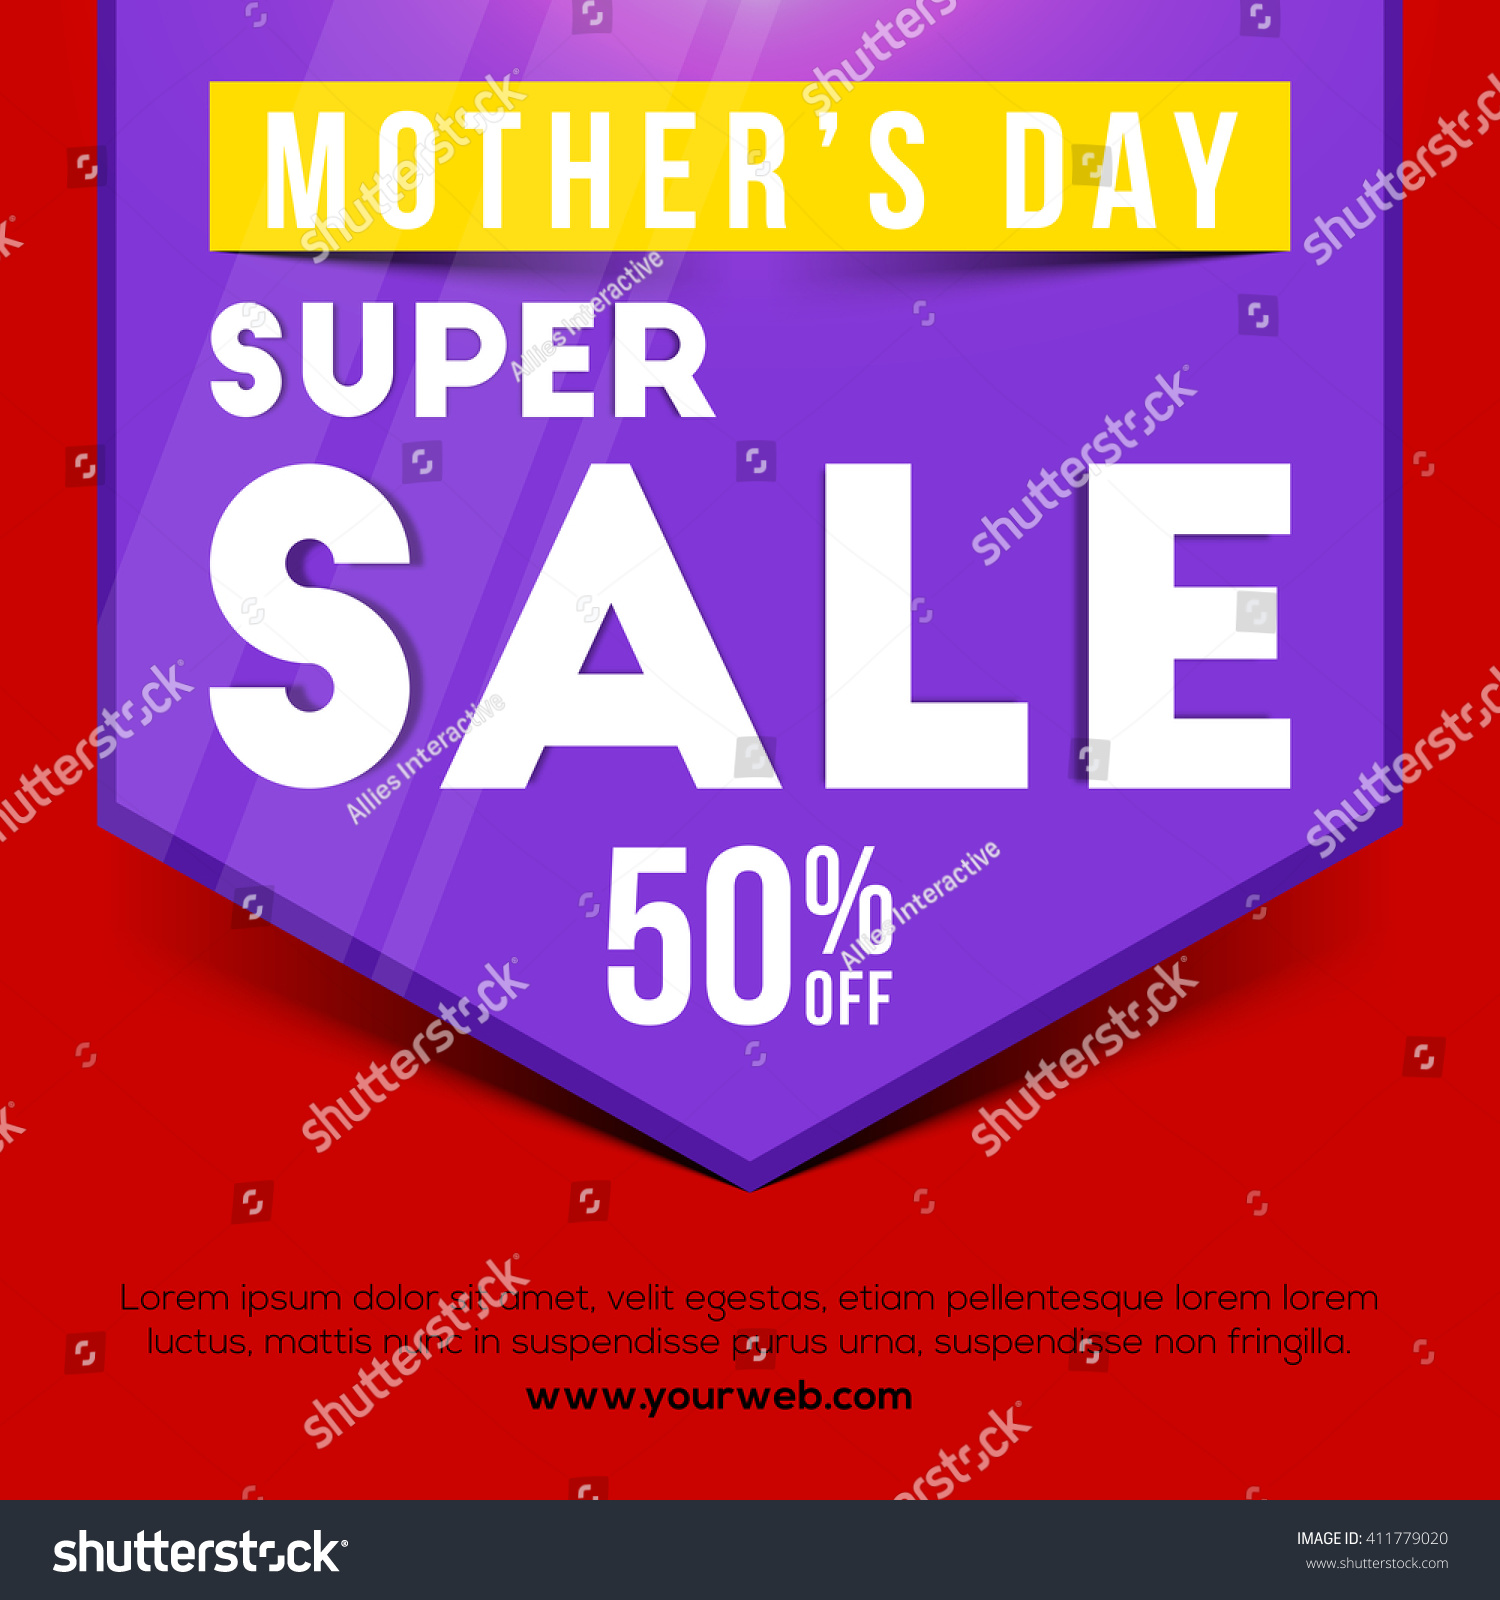 Motheru0027s Day Sale, Super Sale Poster, Sale Banner, Sale Flyer, 50%